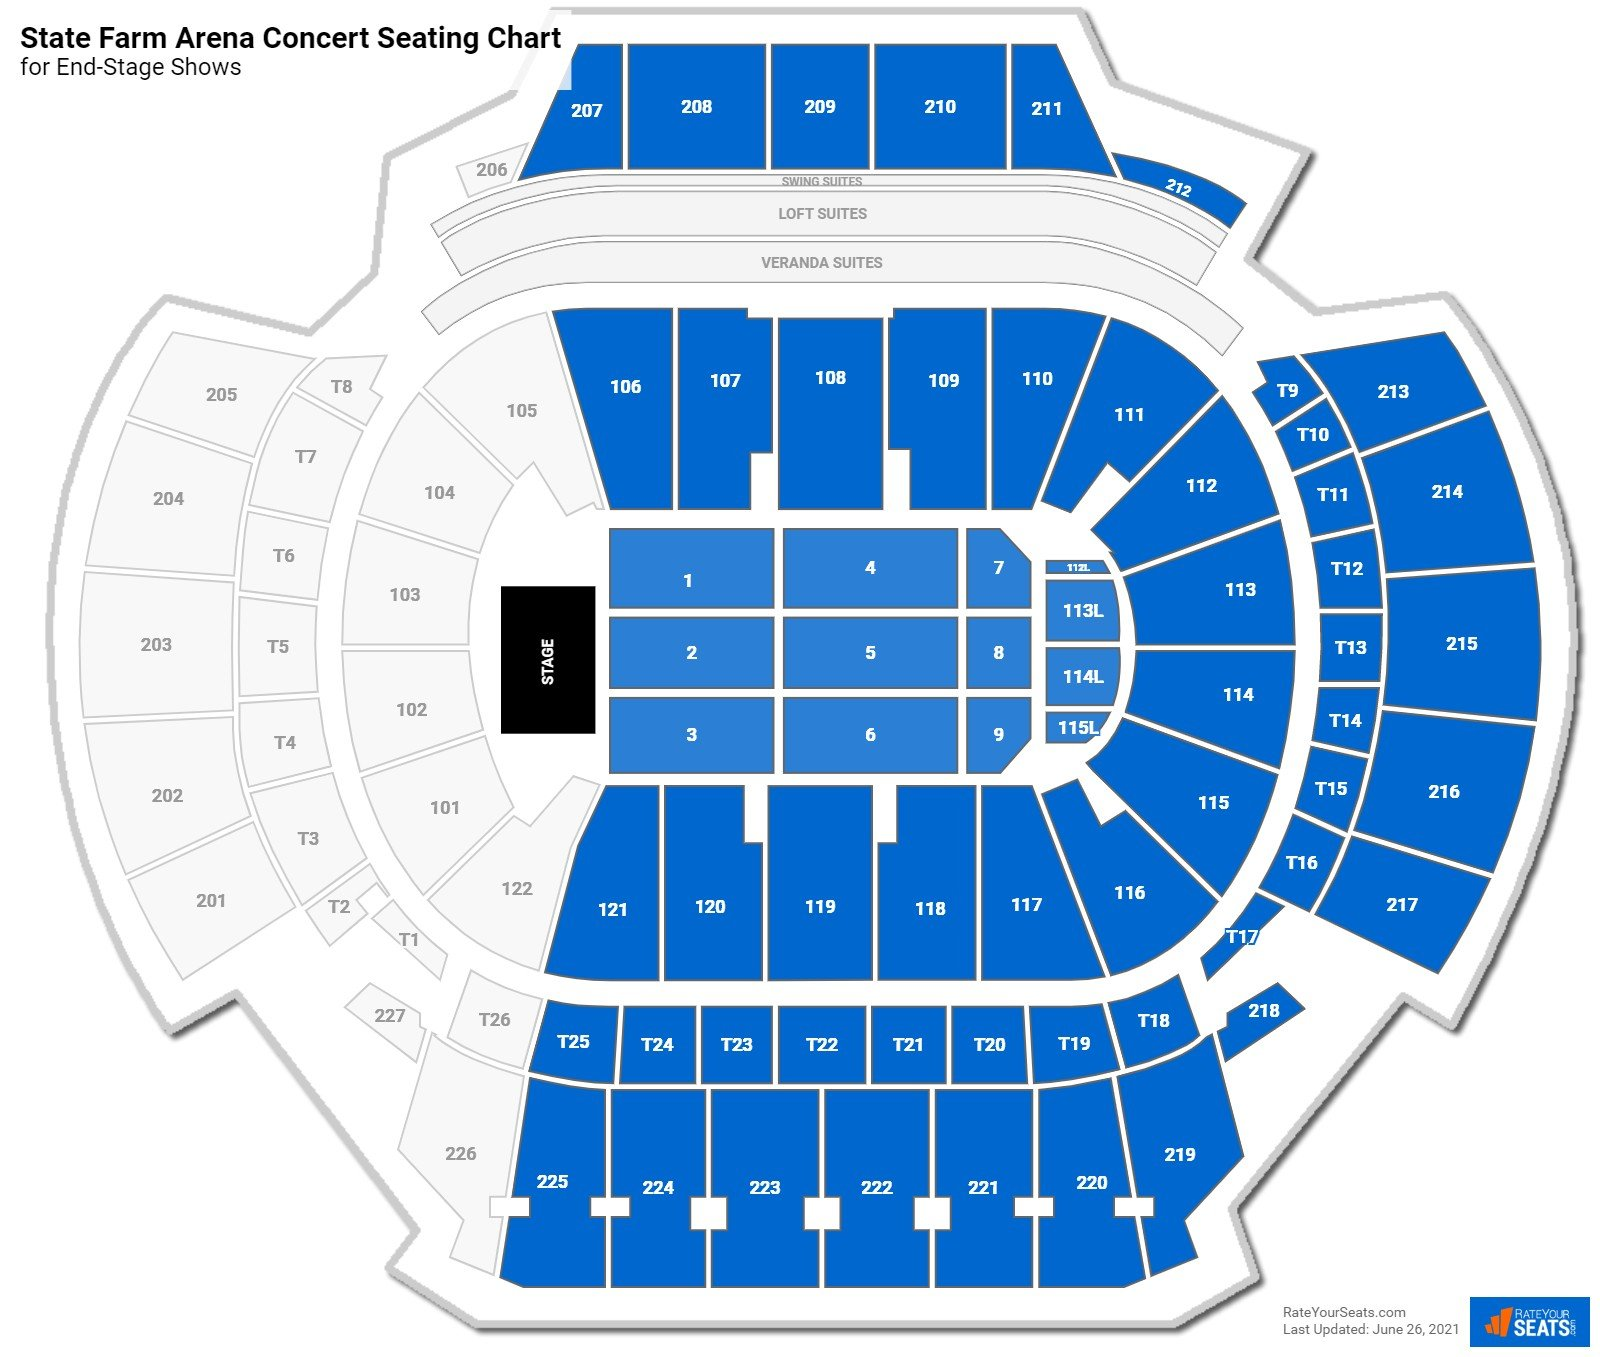 State Farm Arena Seating Chart for Concerts